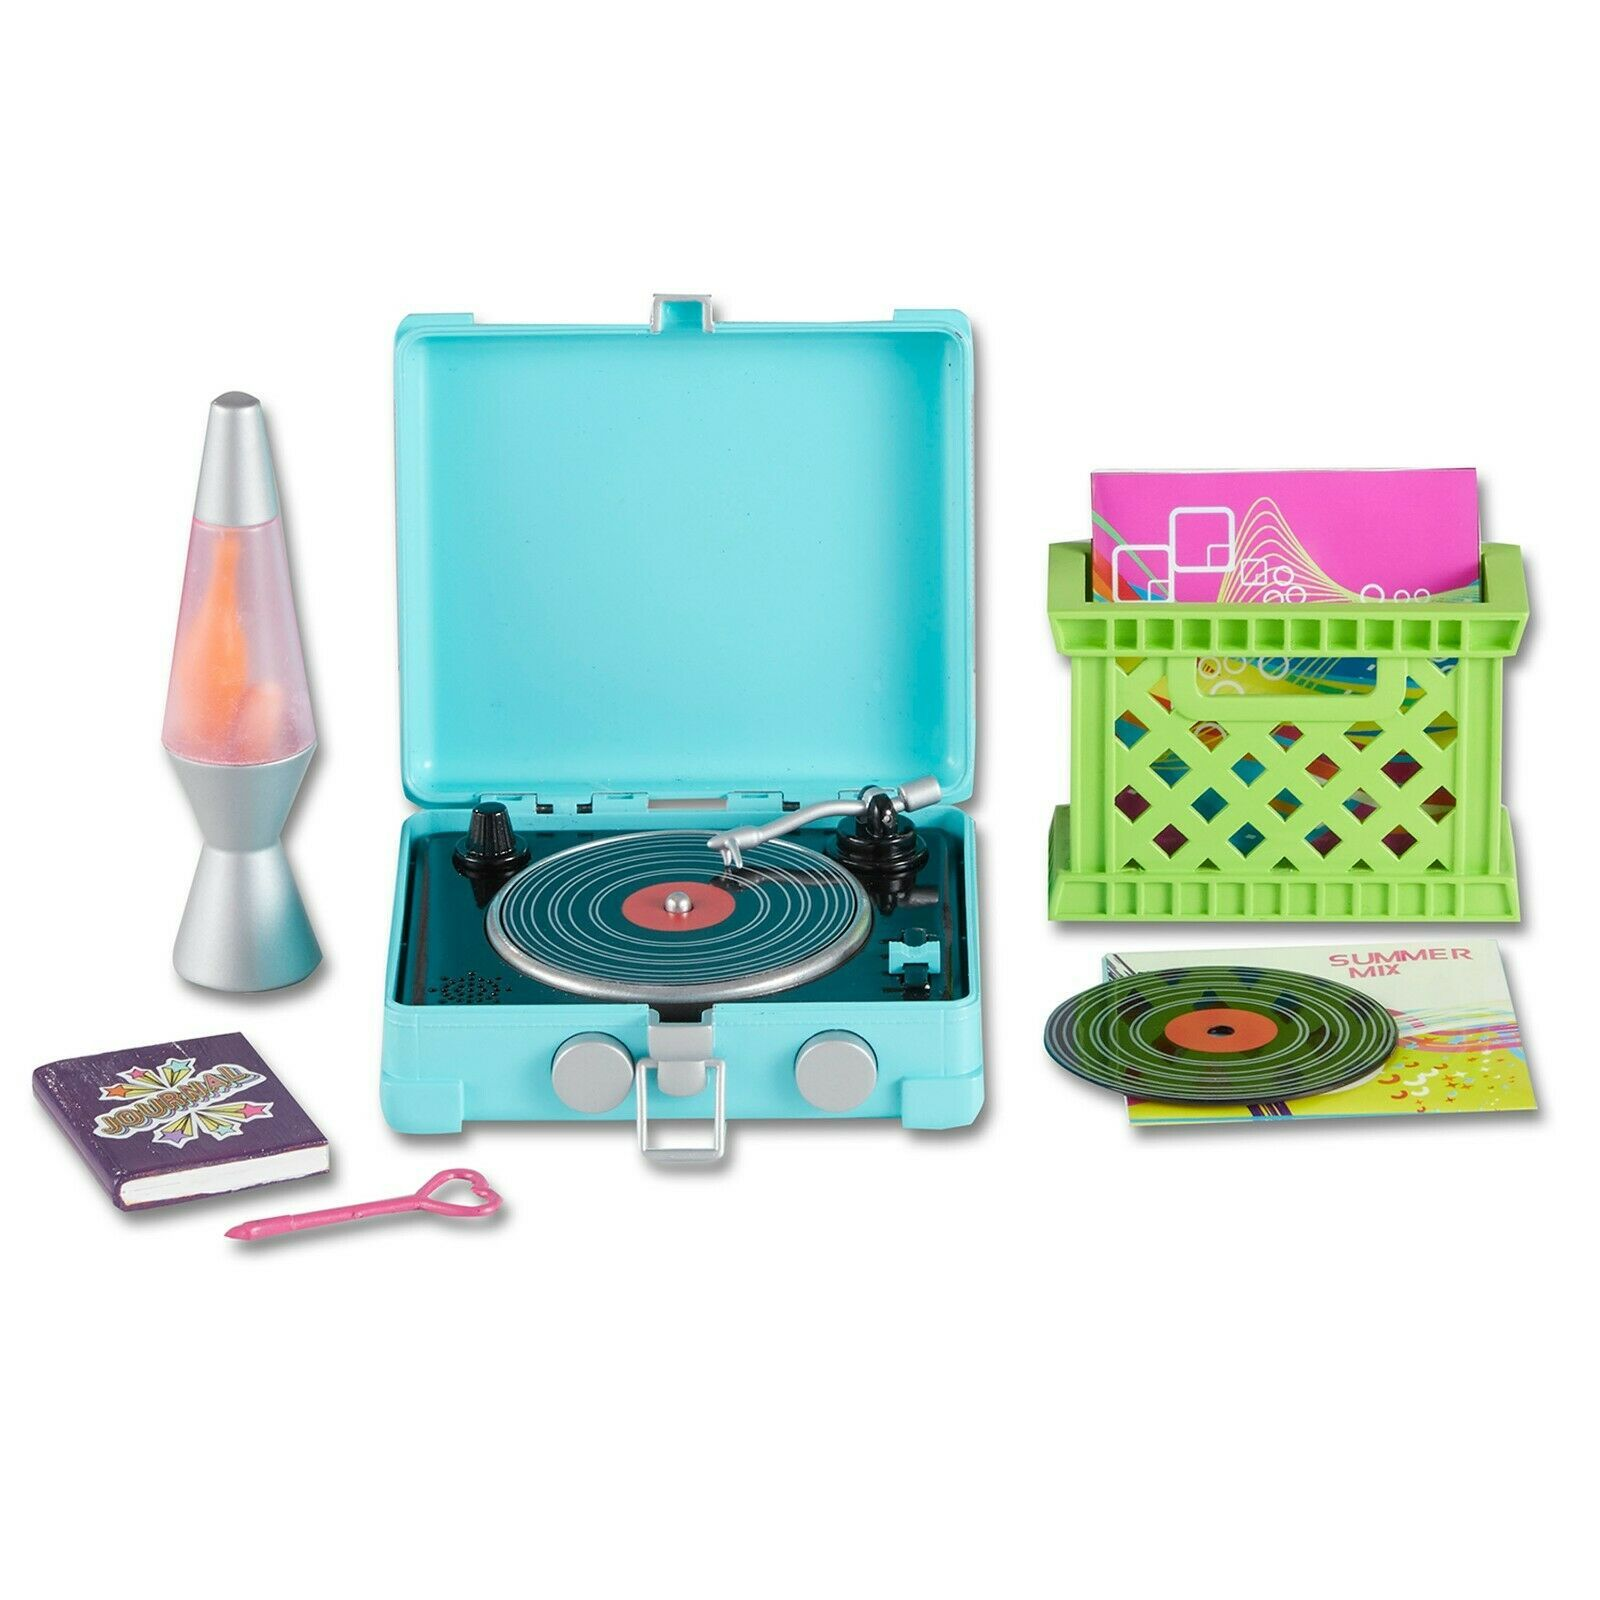 """My Life As Trendy Retro Set with Lava Lamp, Record Player, and More for 18"""" Doll - $14.99"""